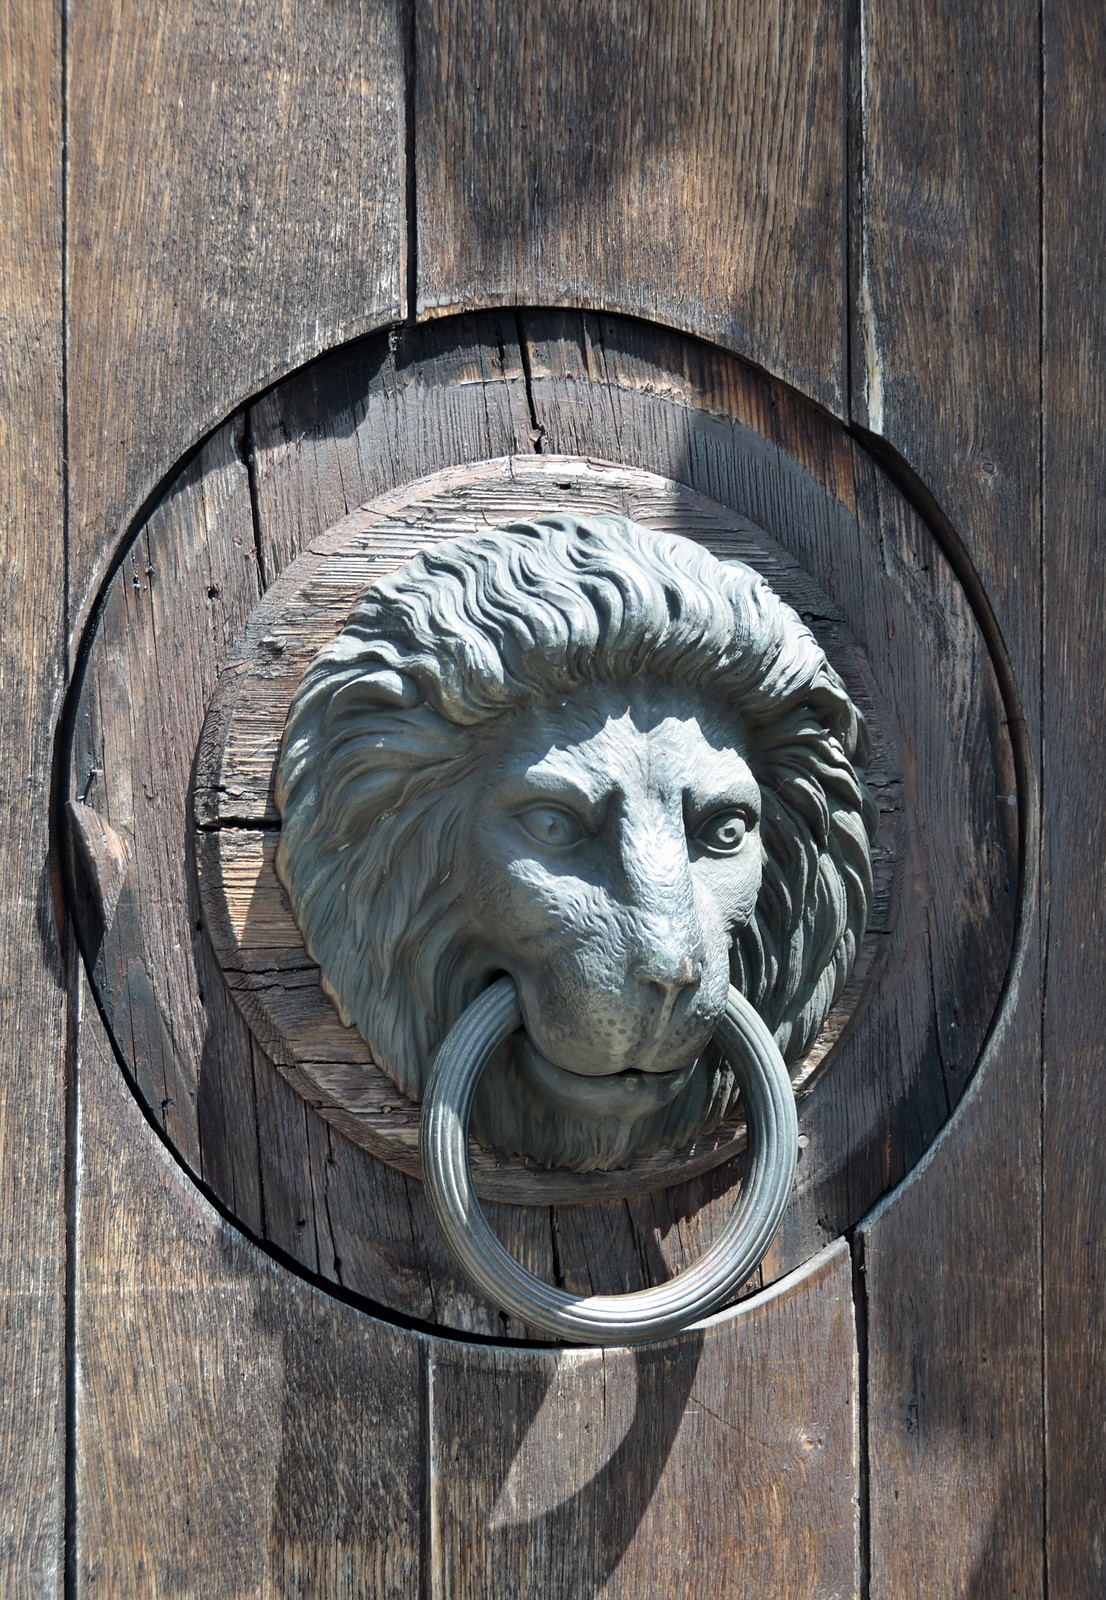 Lion head door knocker at the main entrance of Burg Neulengbach Castle, Lower Austria